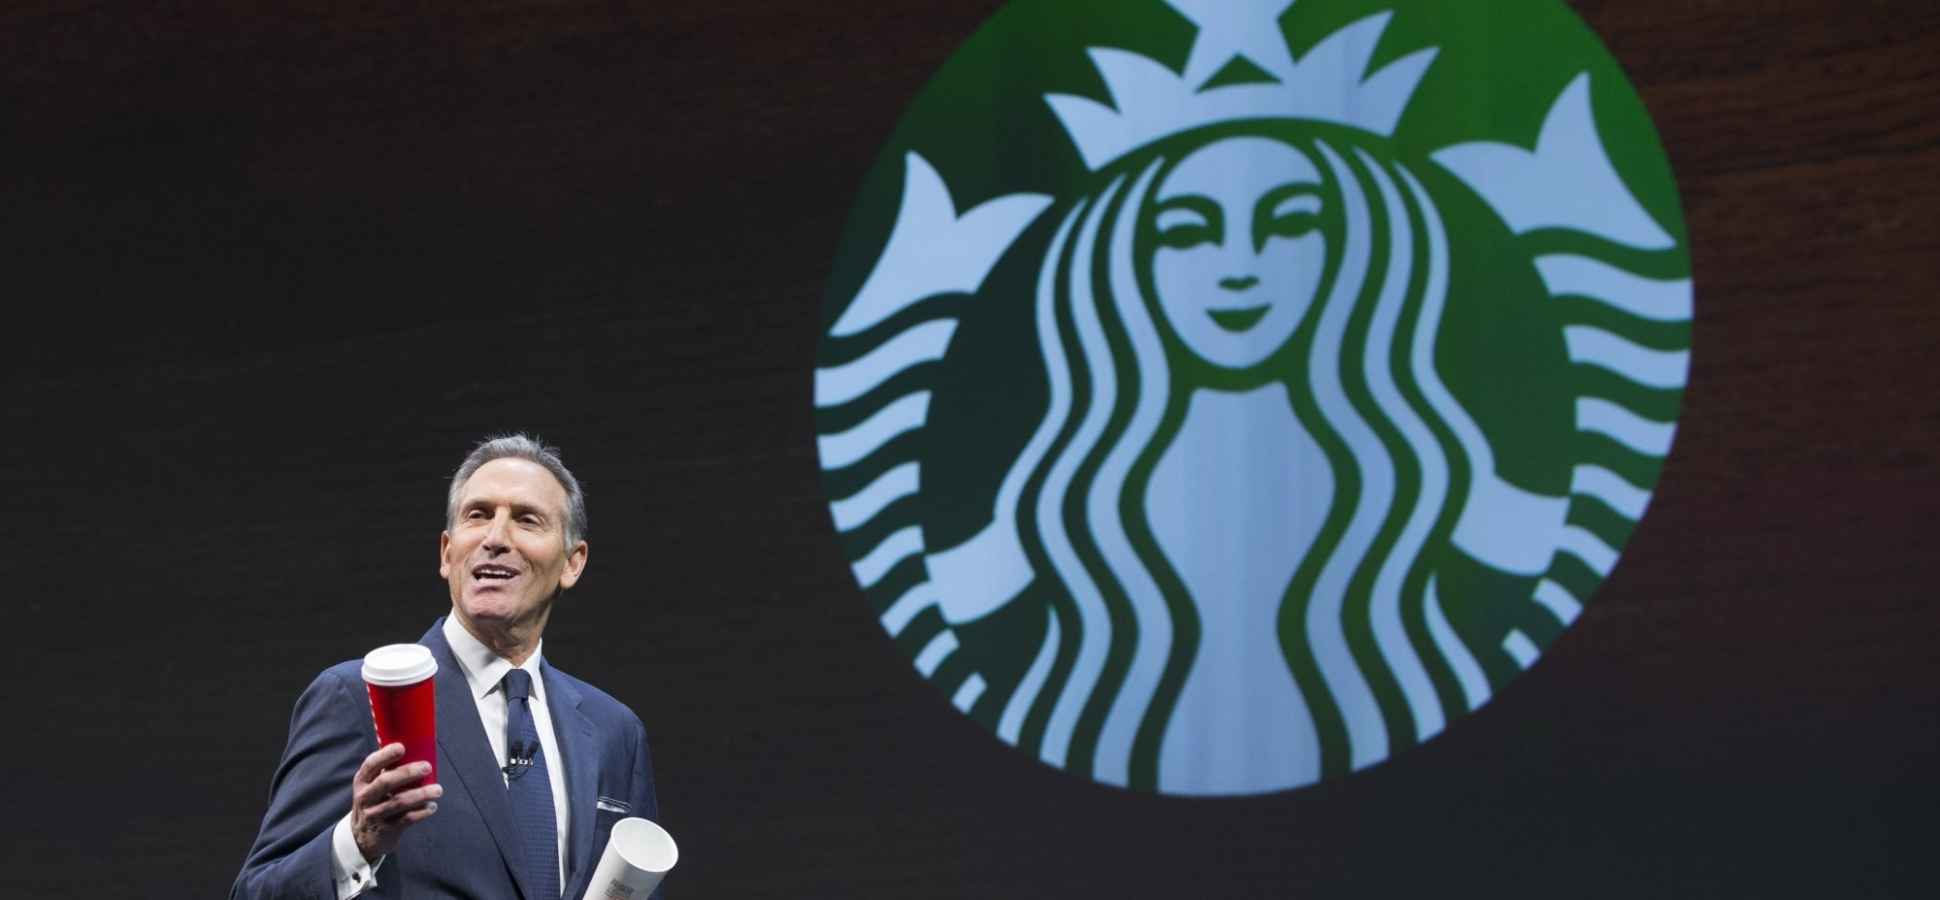 Starbucks Responds to Trump's Immigration Ban With a Controversial Move